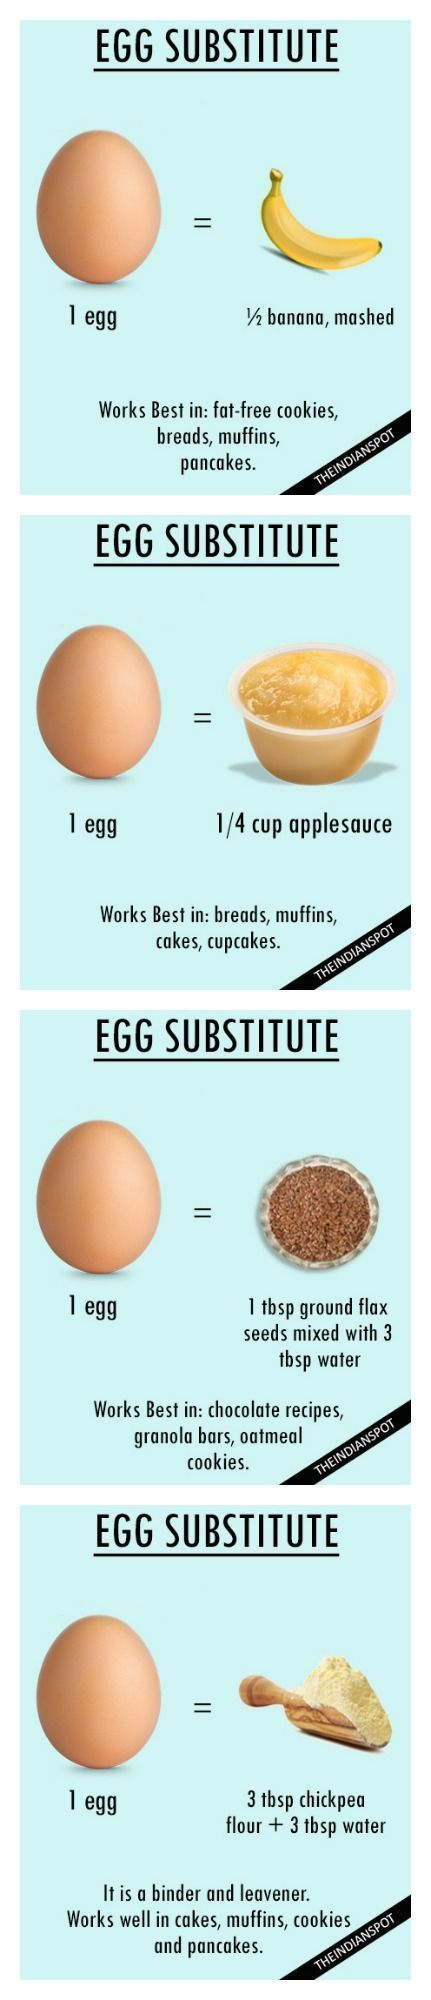 349 best images about fitness and health information on pinterest healthy healthy food and - Alternative uses for eggs ...